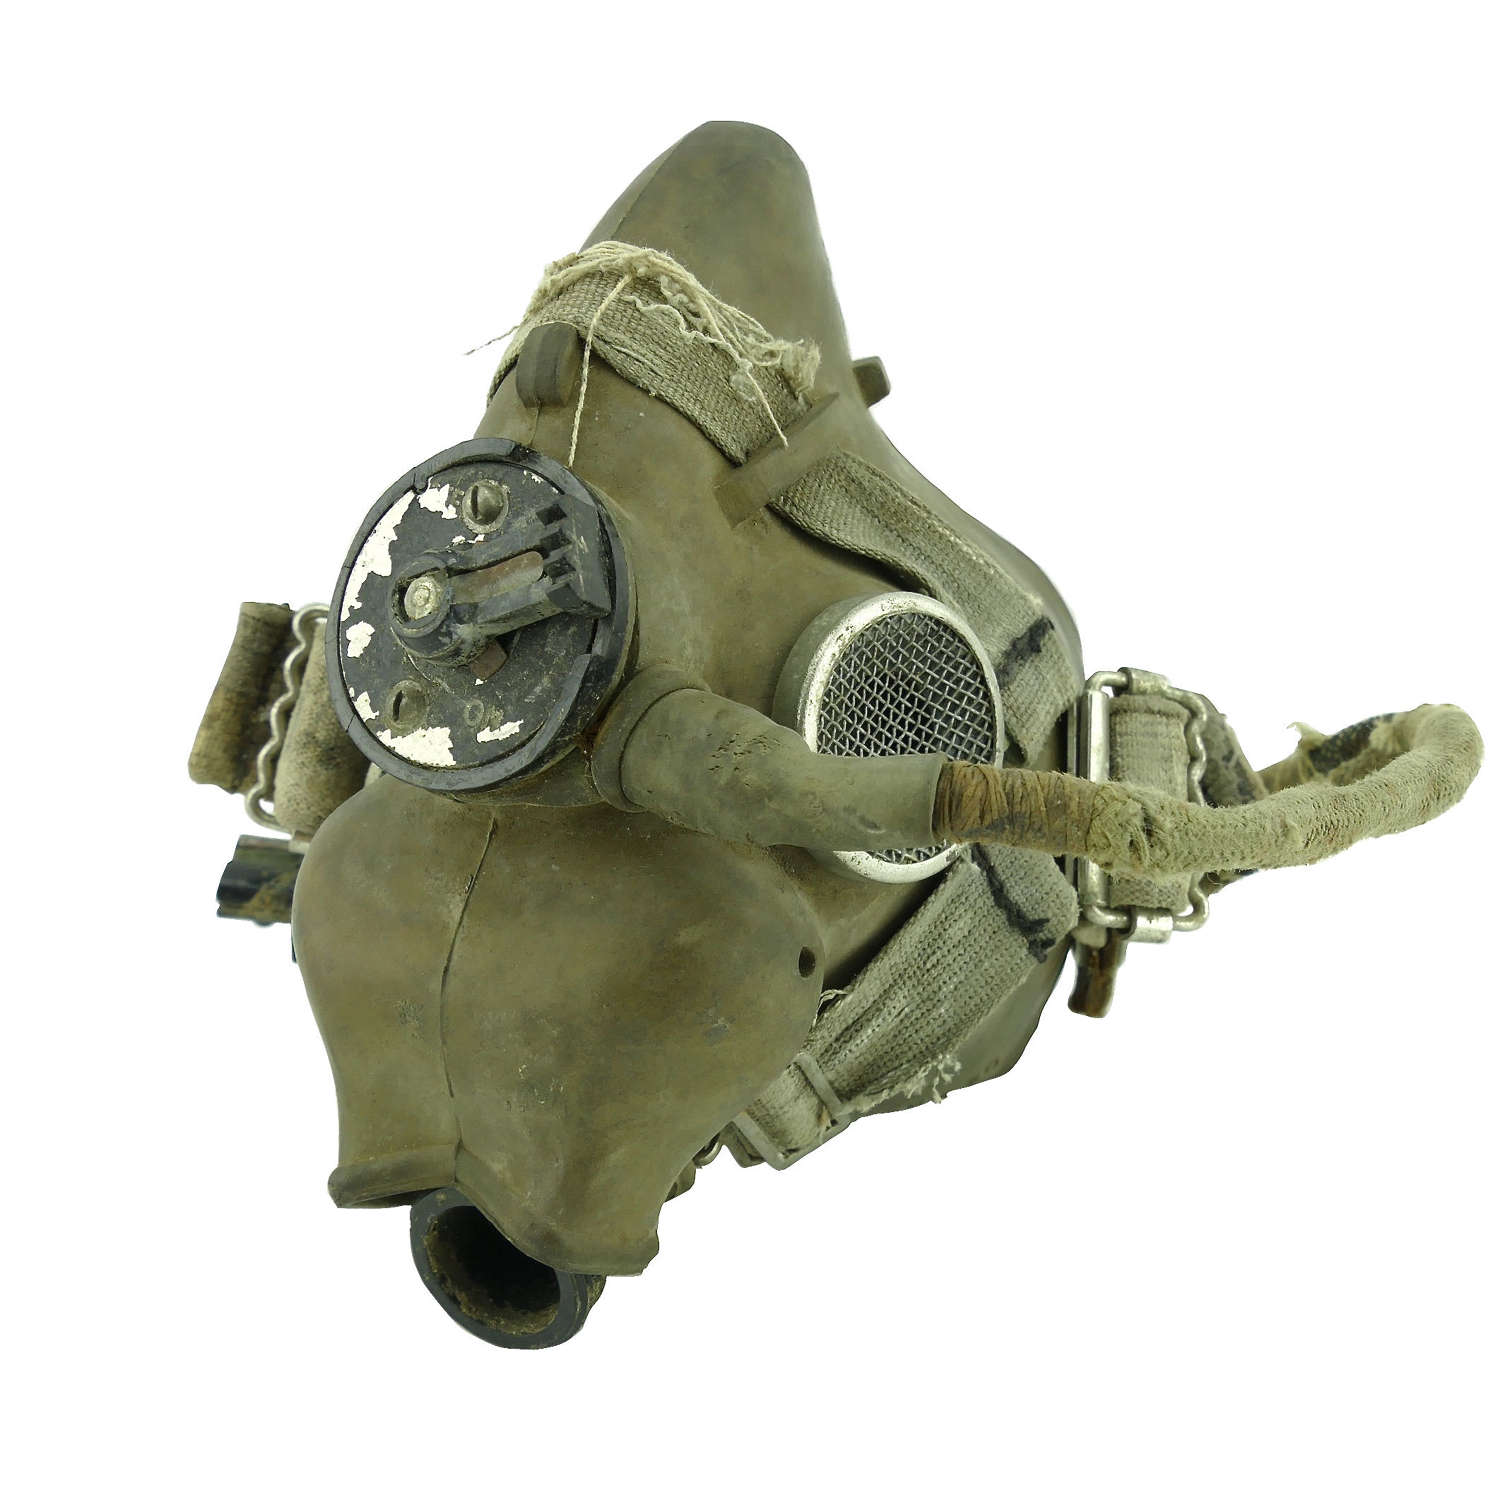 RAF type H oxygen mask, 1946 dated